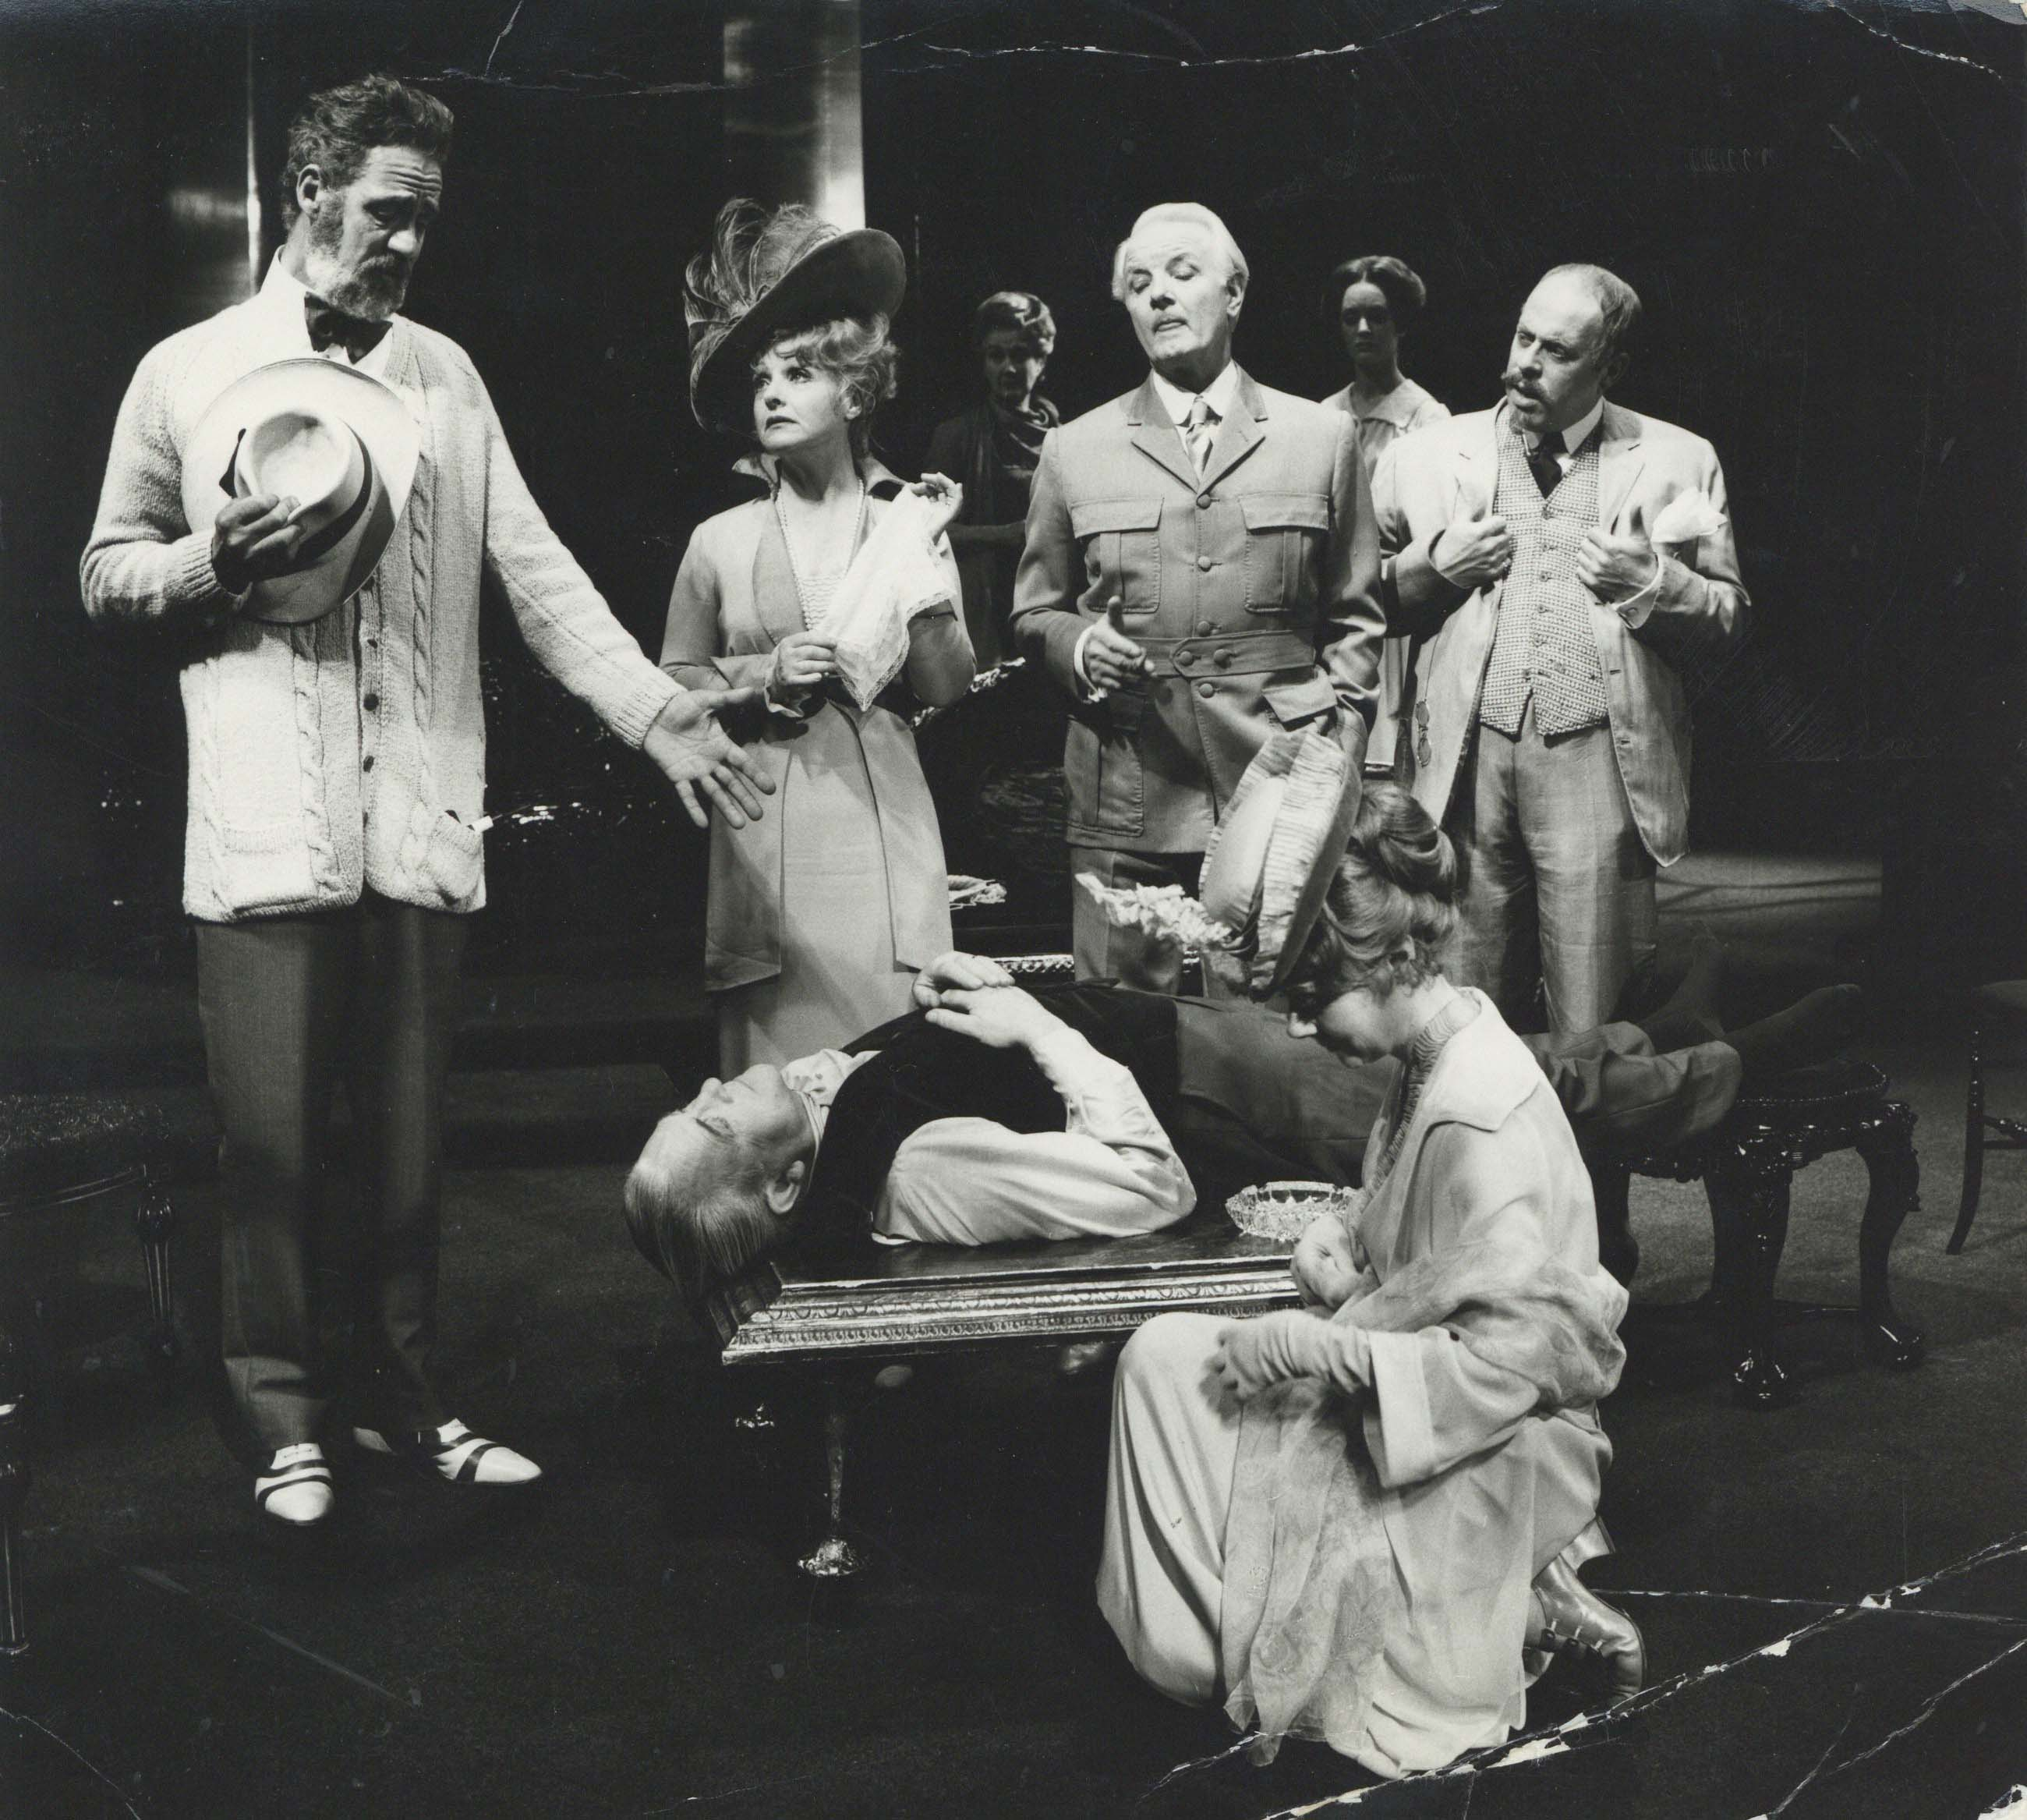 Production Photograph - Dear Antoine -   Michael Aldridge, Joyce Redman, Jane Baxter, Hubert Gregg, Joanna David, Clive Swift, John Clements, Renee Asherson Photographer John Timbers - 1971